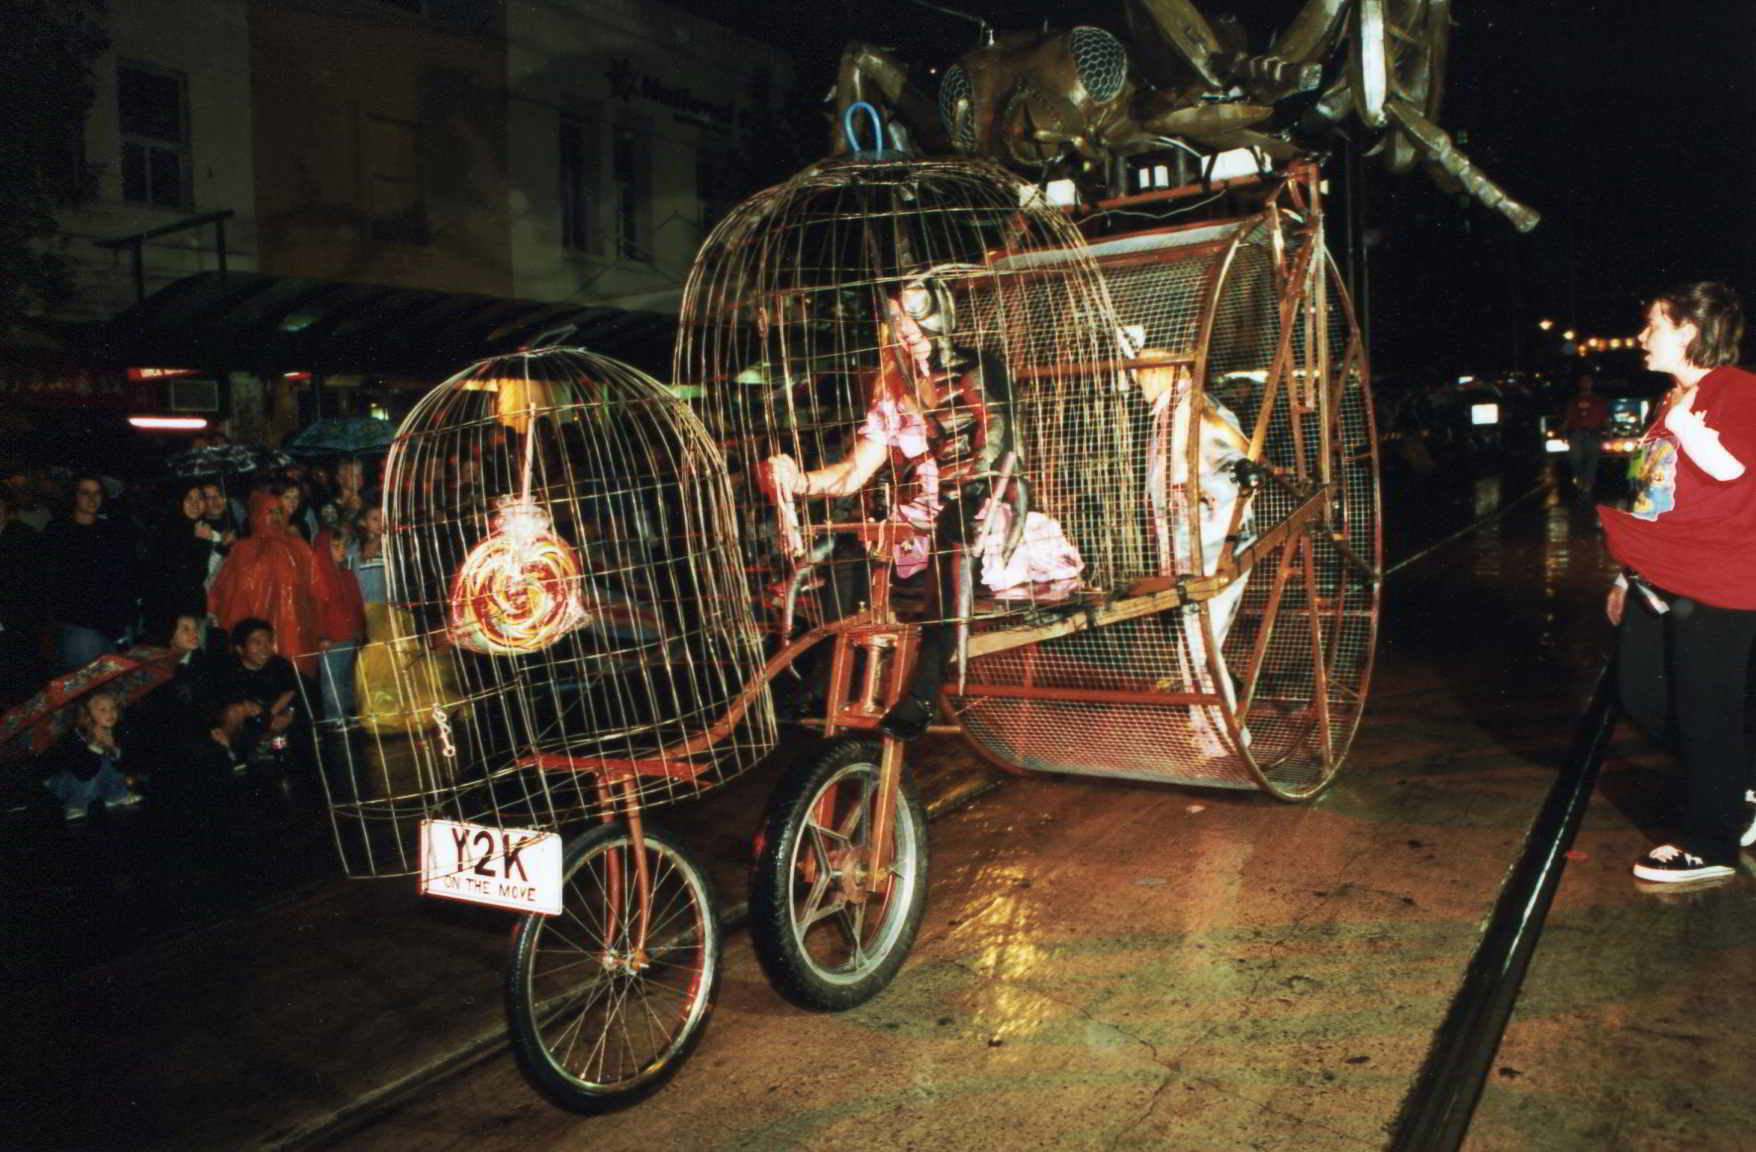 Road Roach's 3 cage parade contraption on the street at night